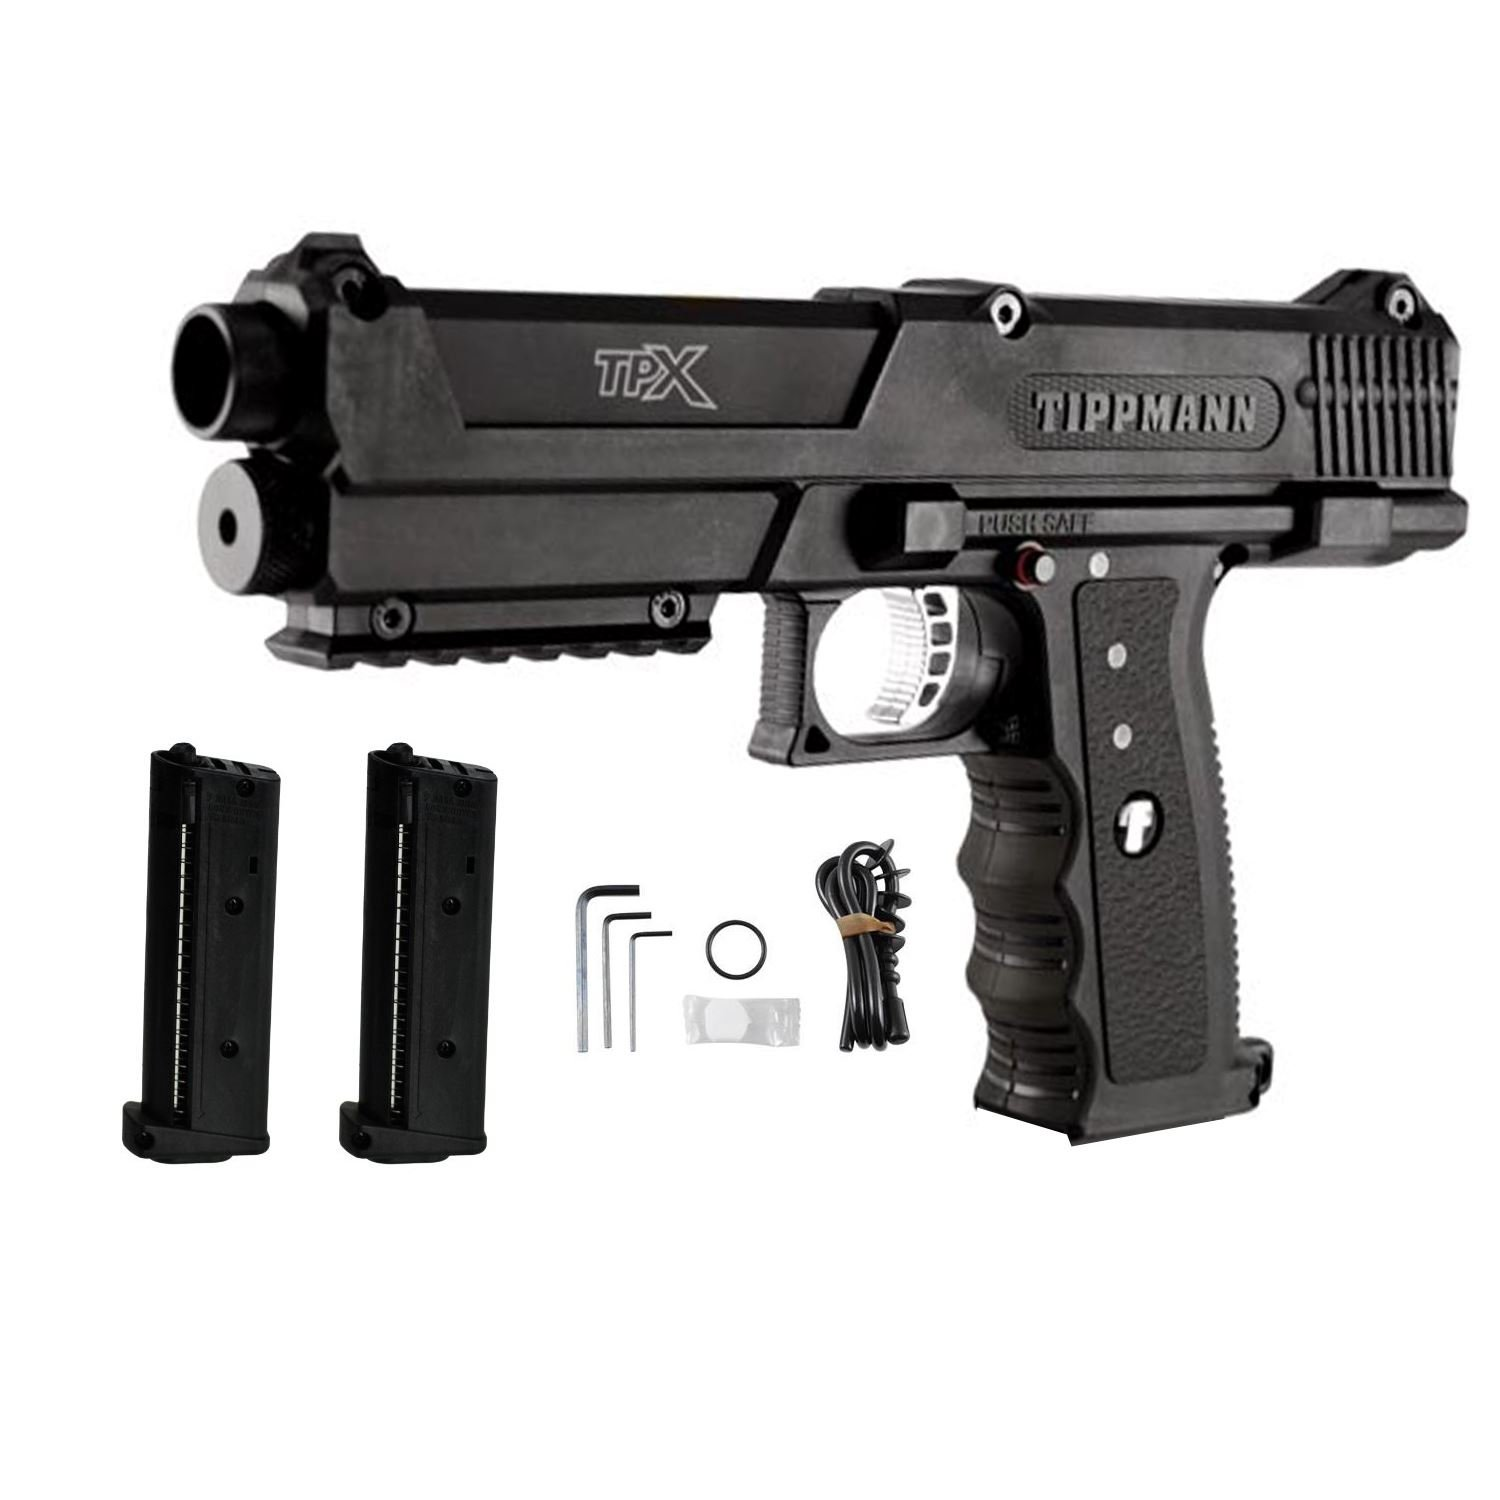 Tippmann TiPX .68 Caliber Paintball Pistol by Tippmann